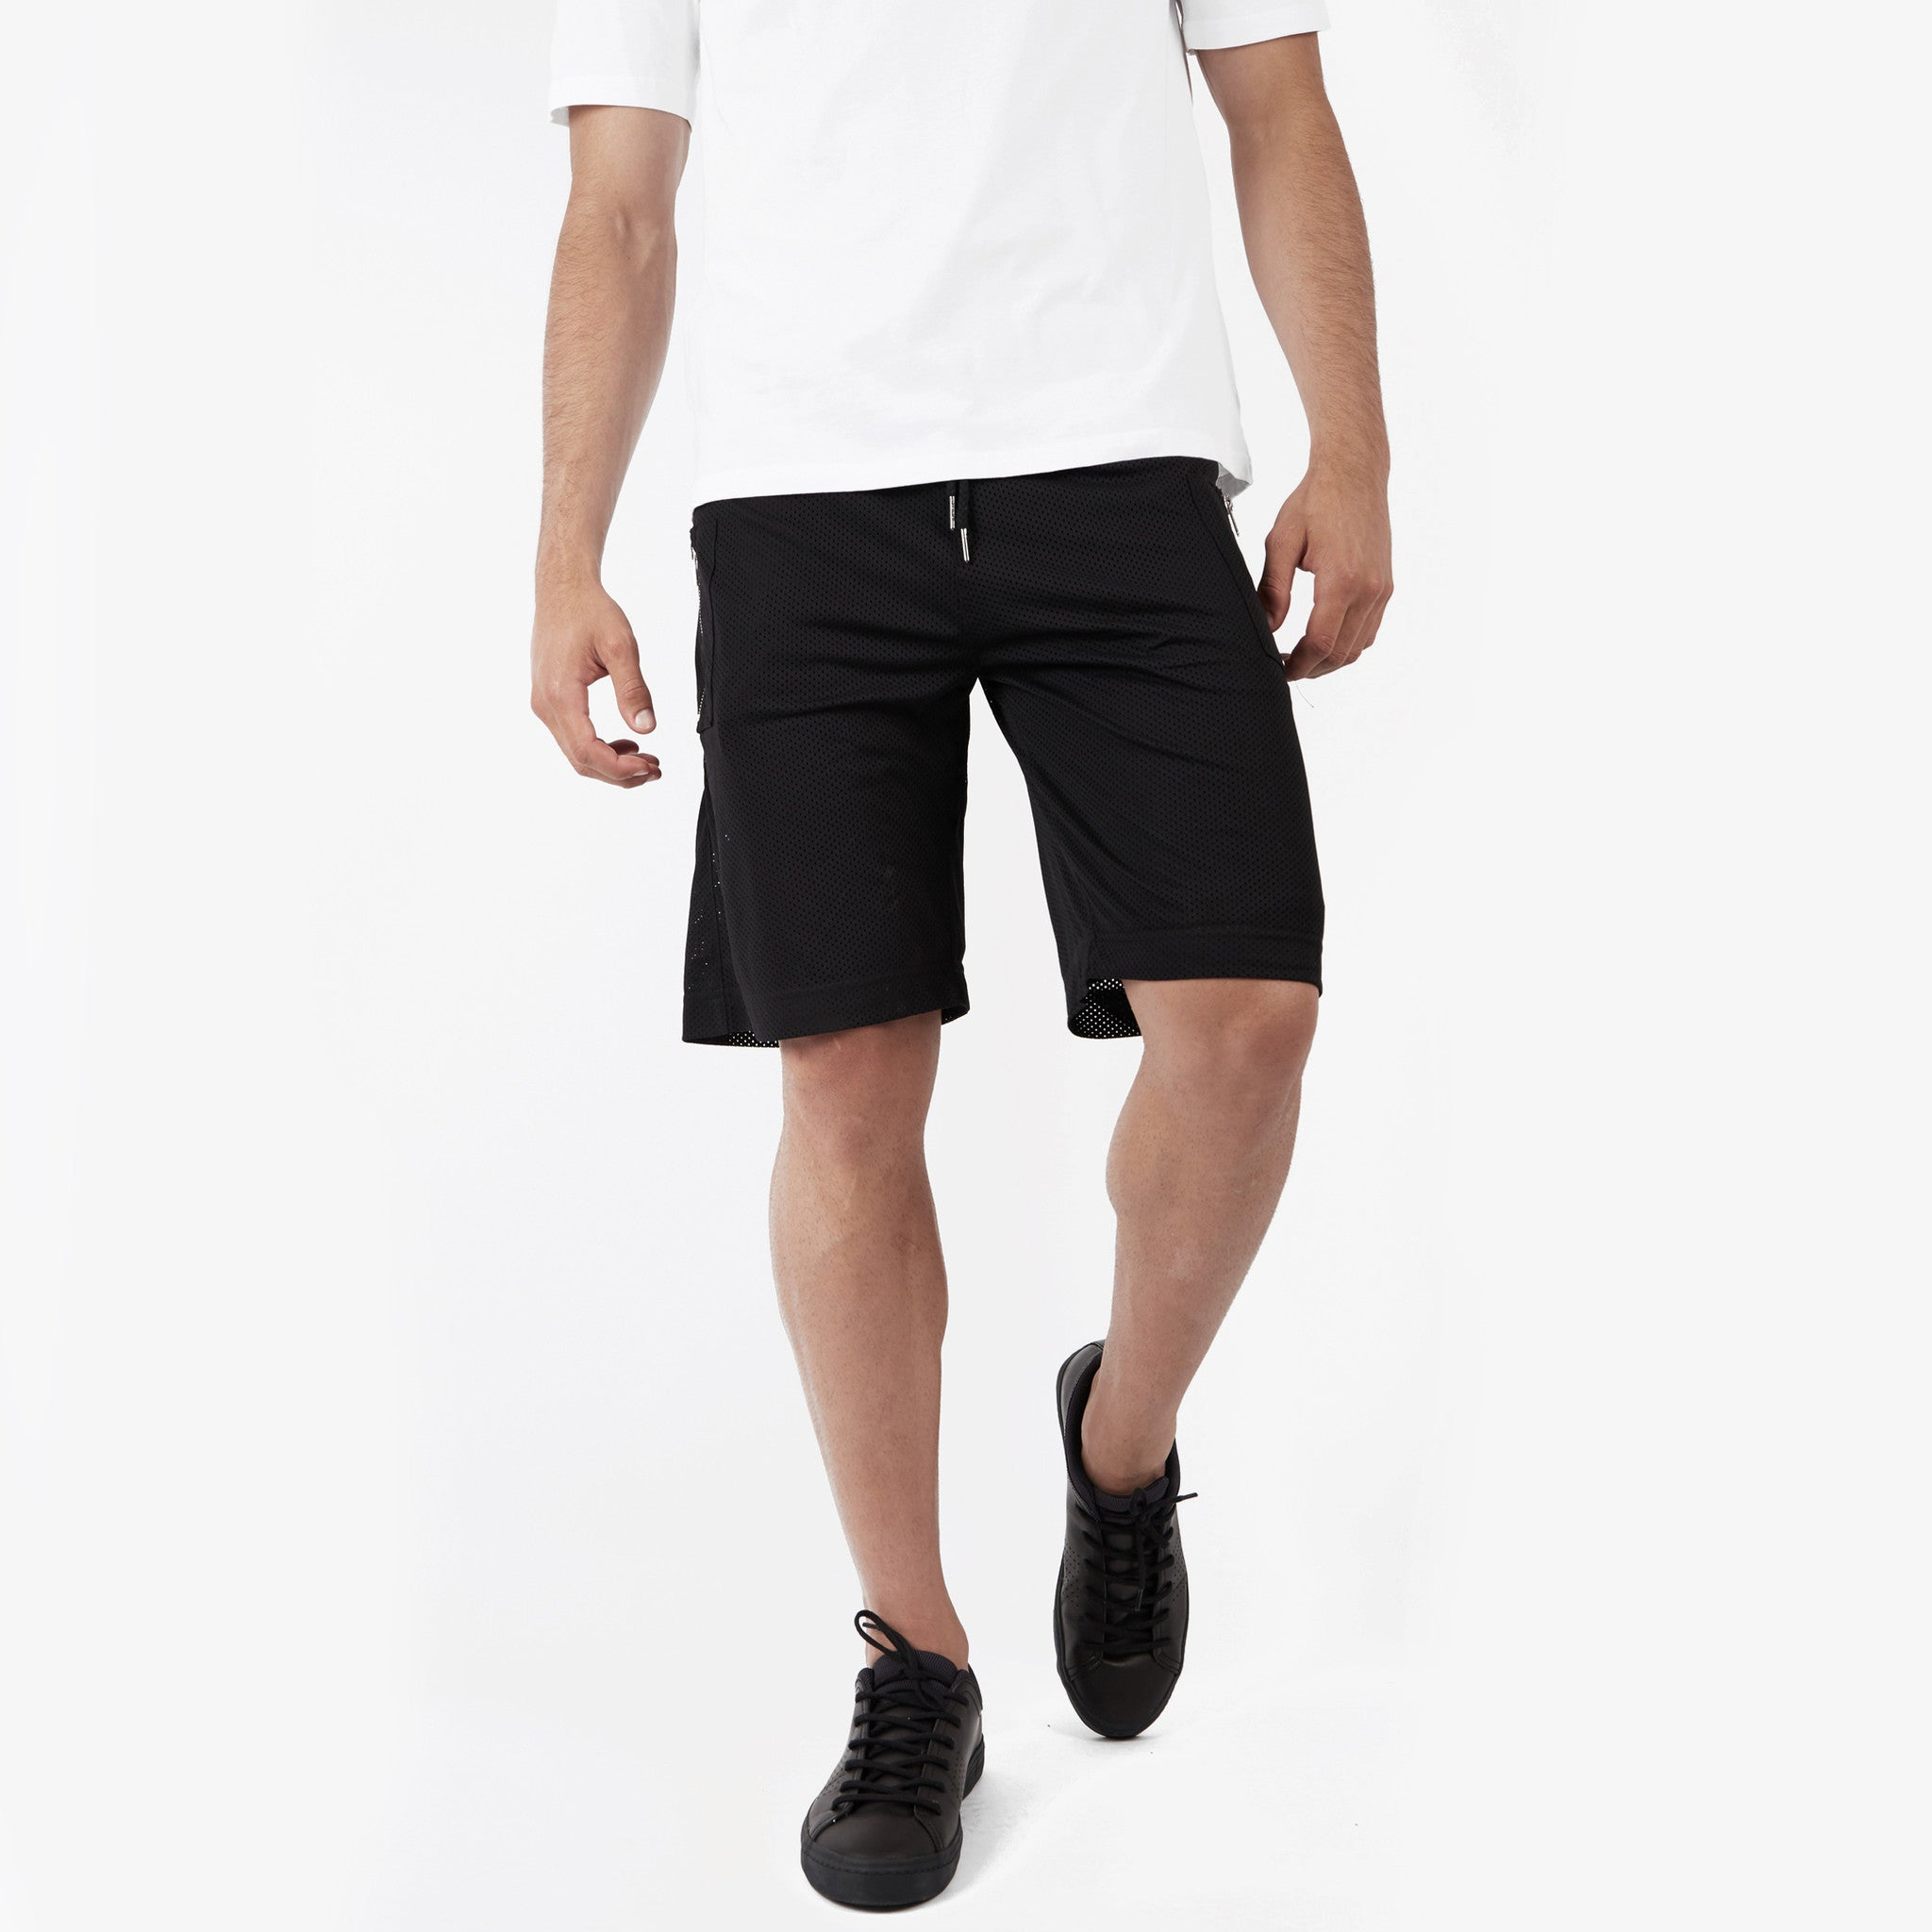 SR283 Utility Airtex Shorts - Black - underated london - underatedco - 1